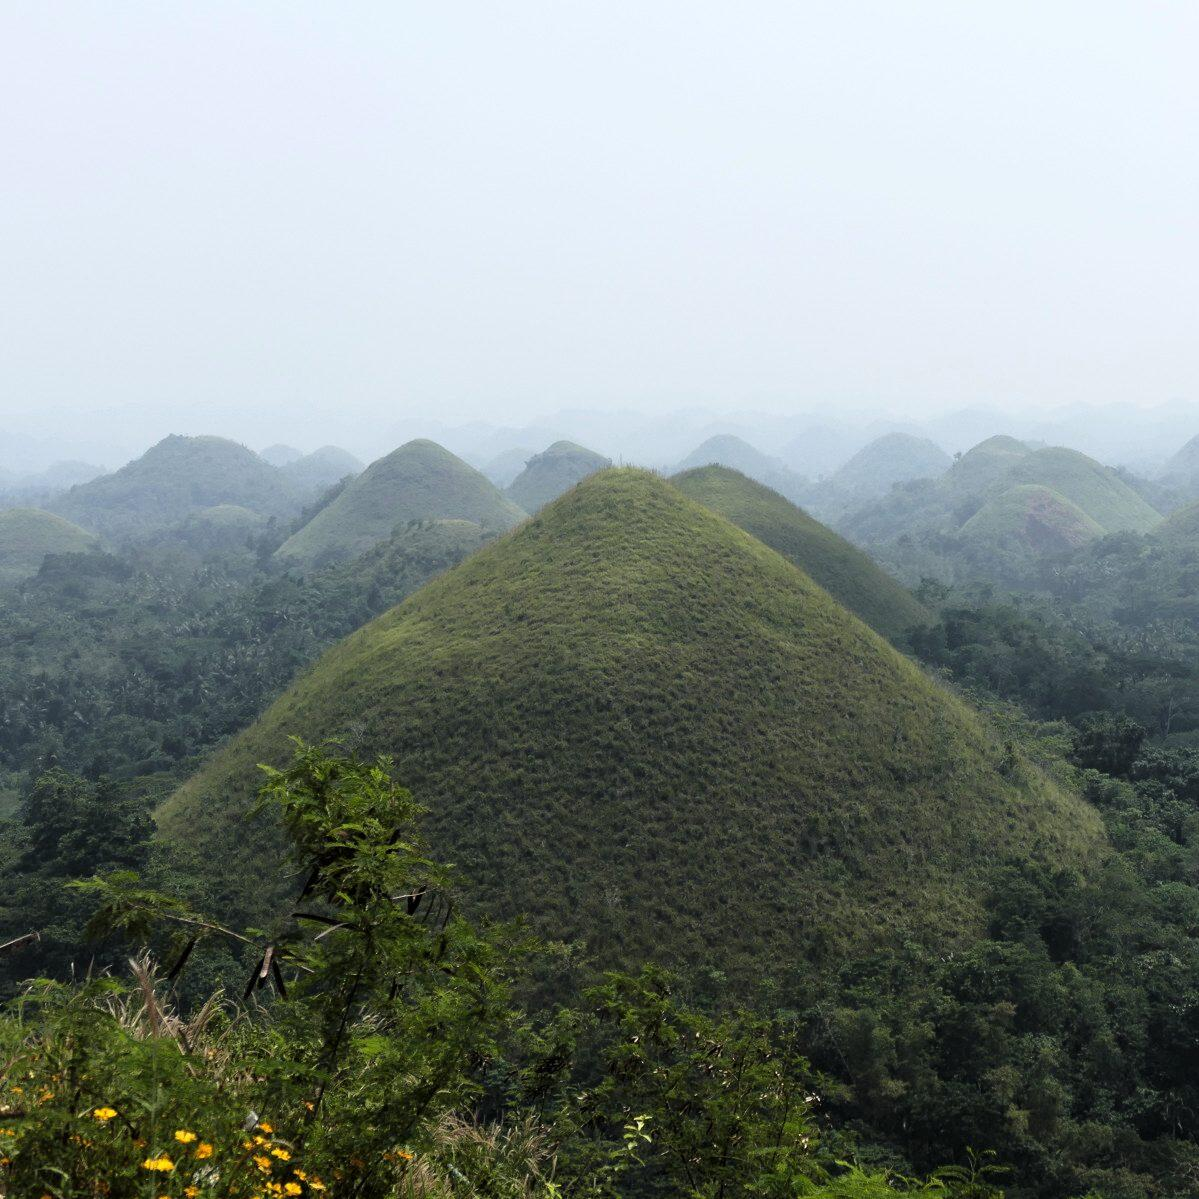 The Chocolate Hills cover central Bohol. Noah Strycker